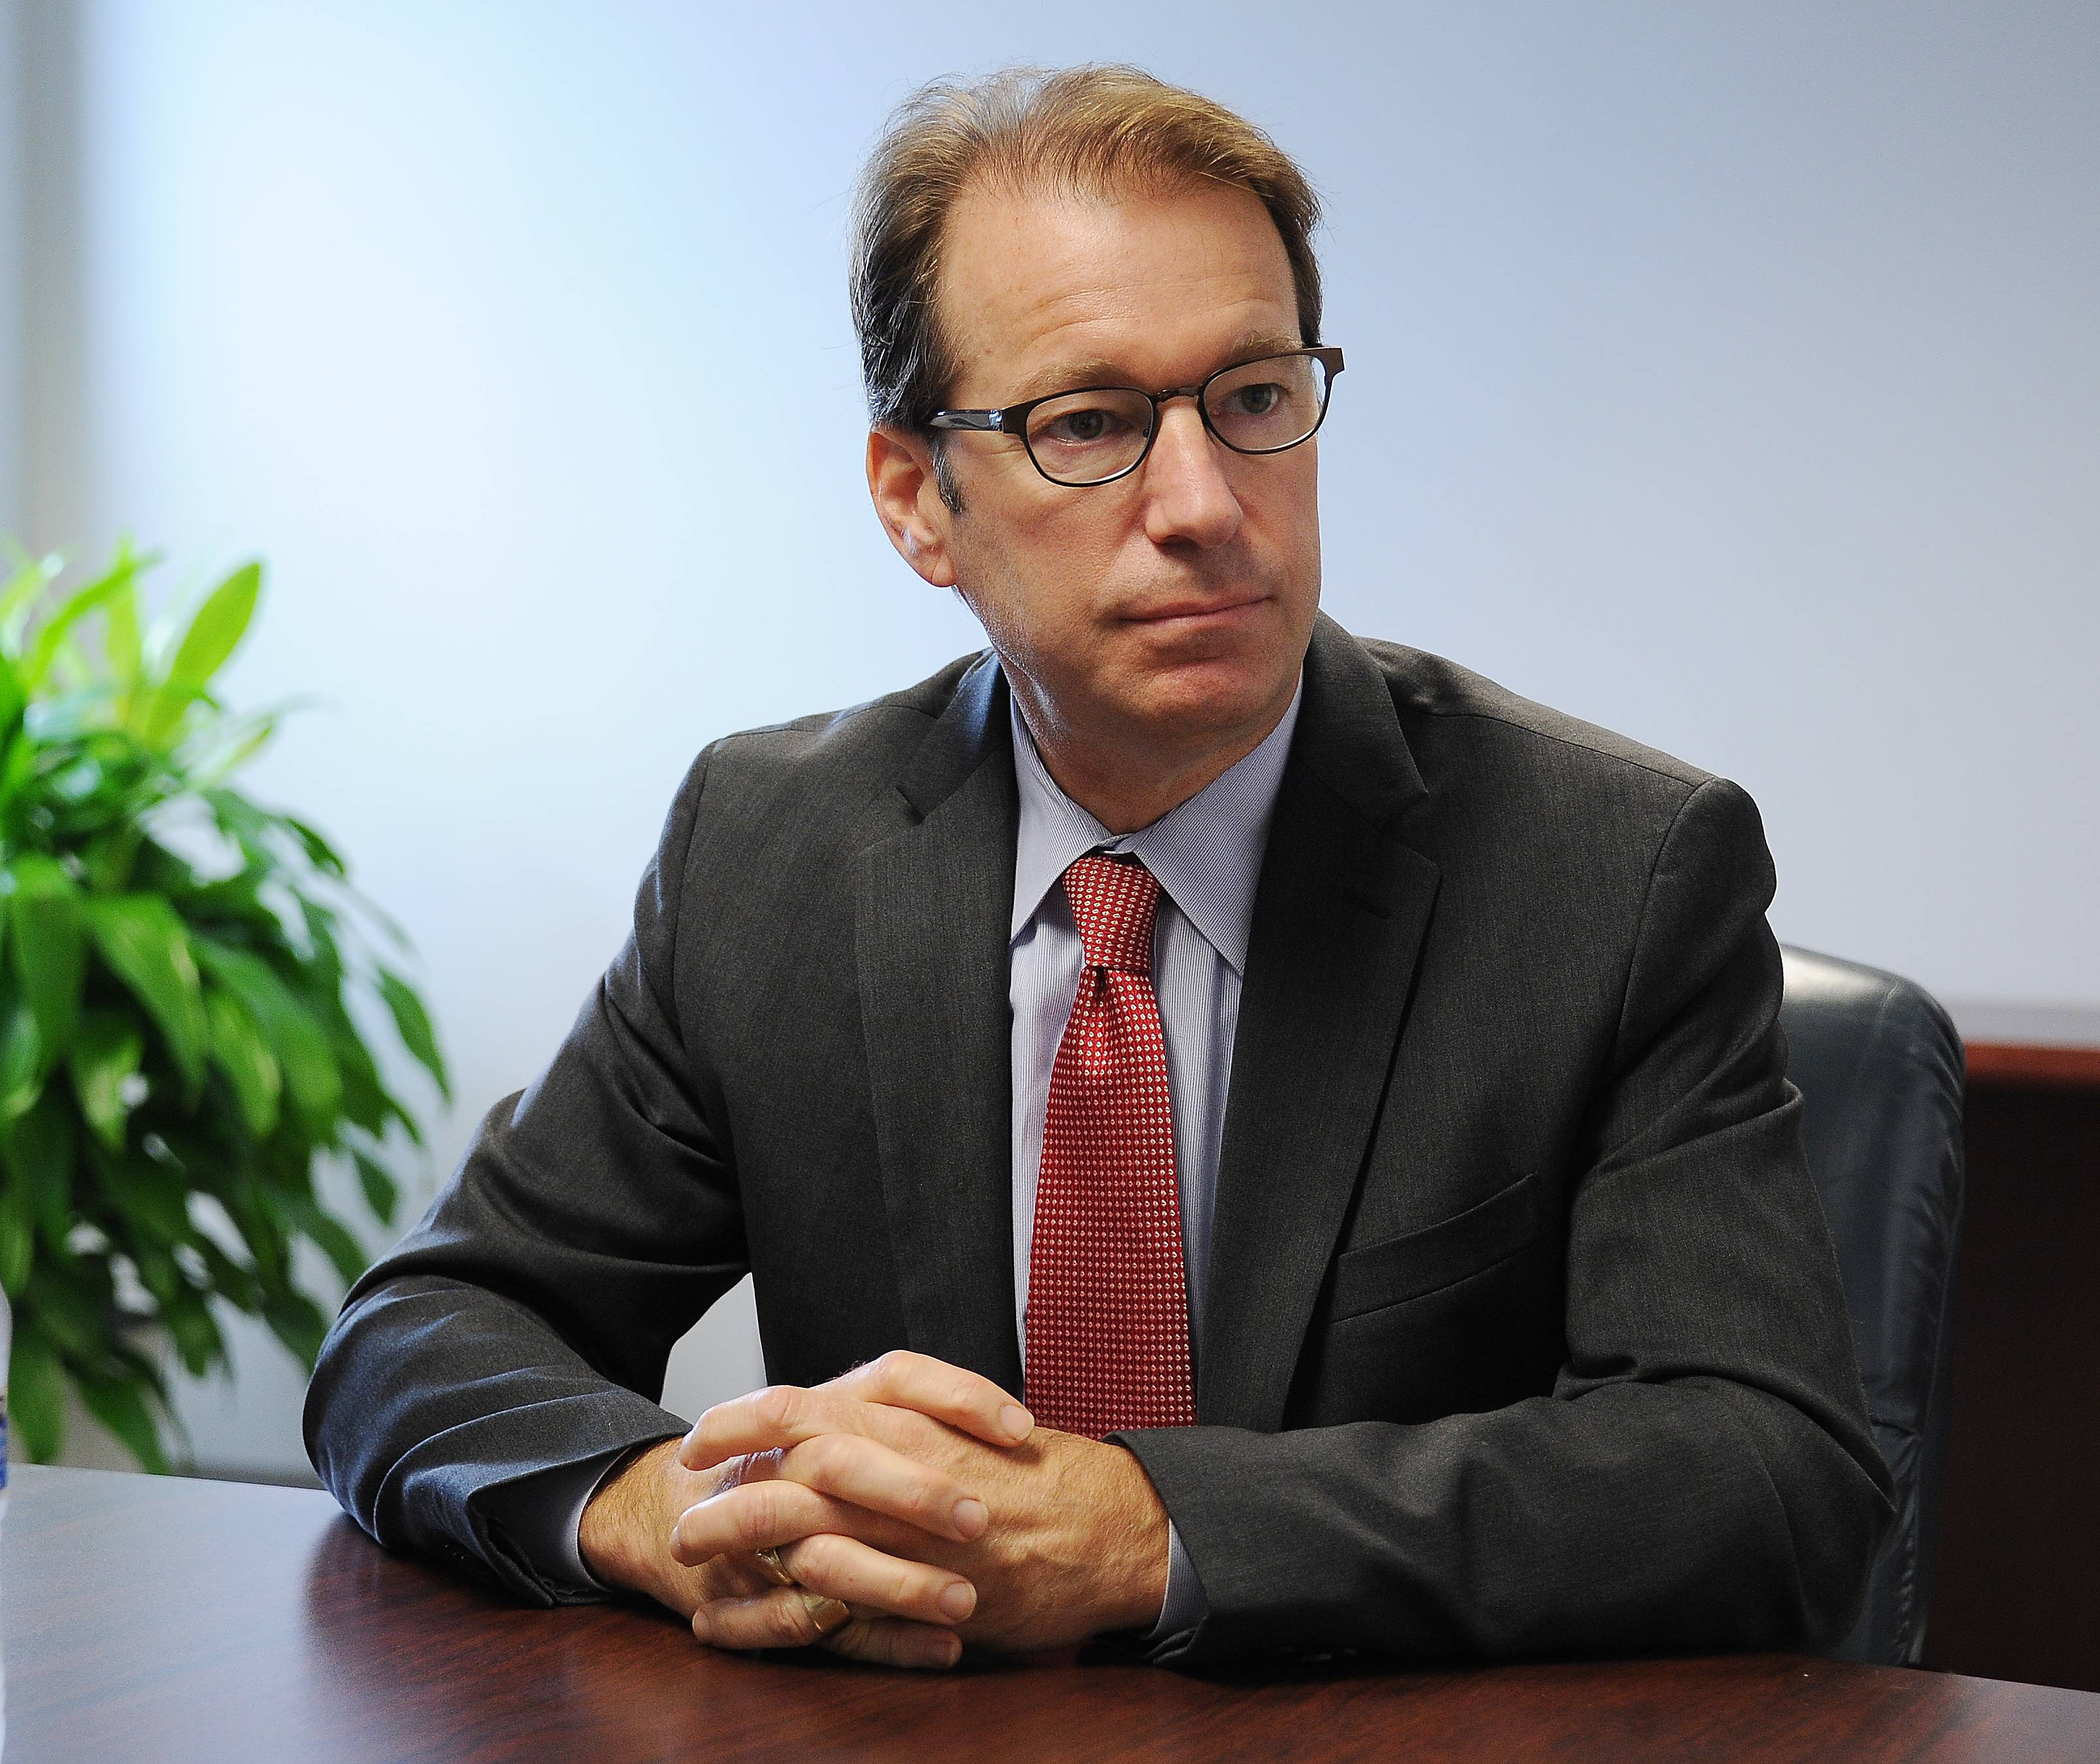 Roskam talks taxes at luncheon, skips protesters